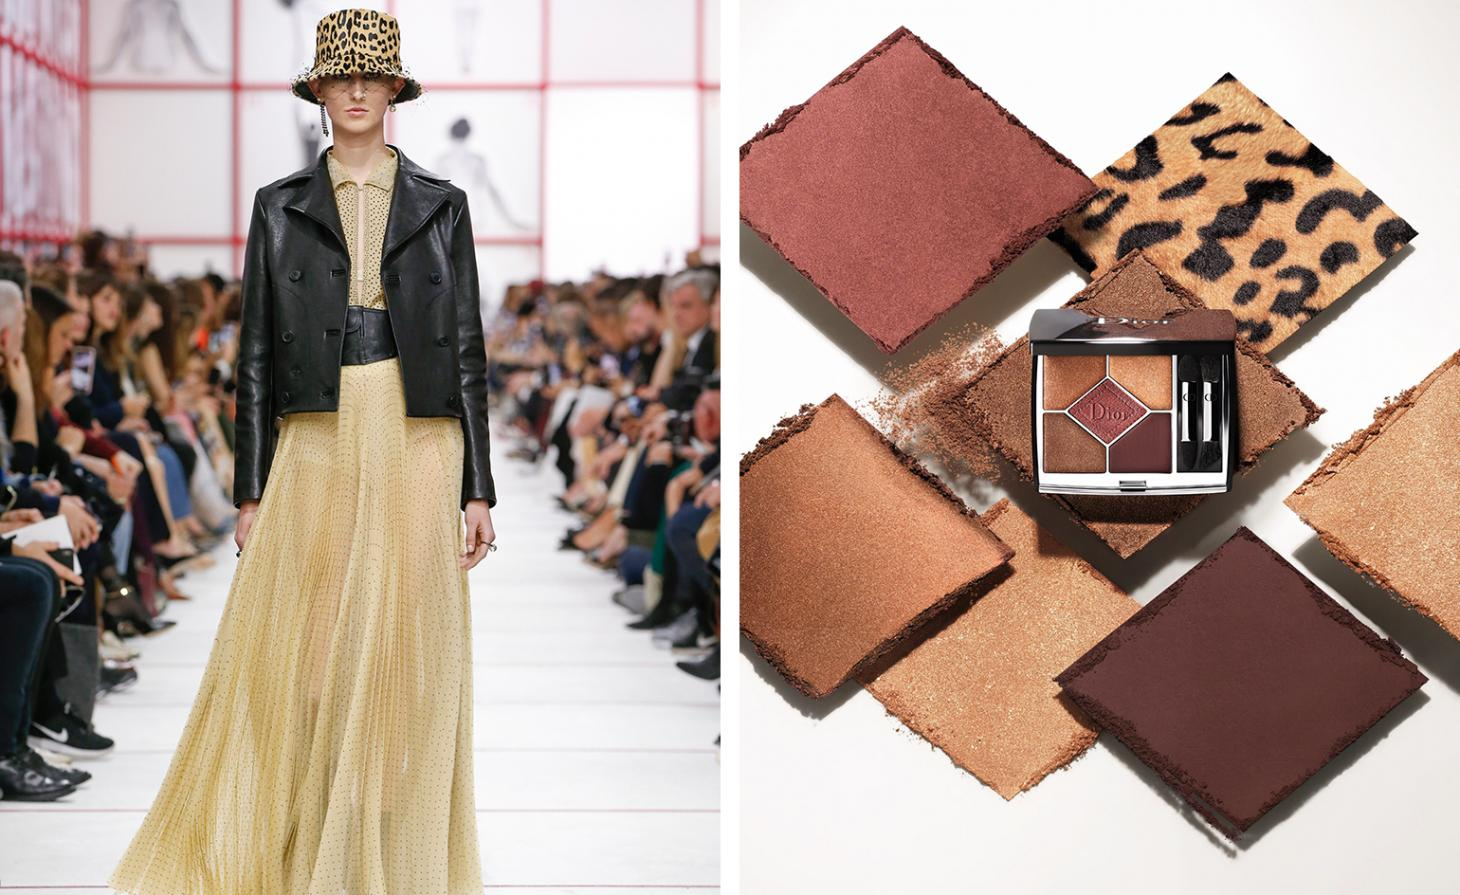 Dior 689 Mitzah Couleurs Couture Palette next to Dior AW19 womenswear